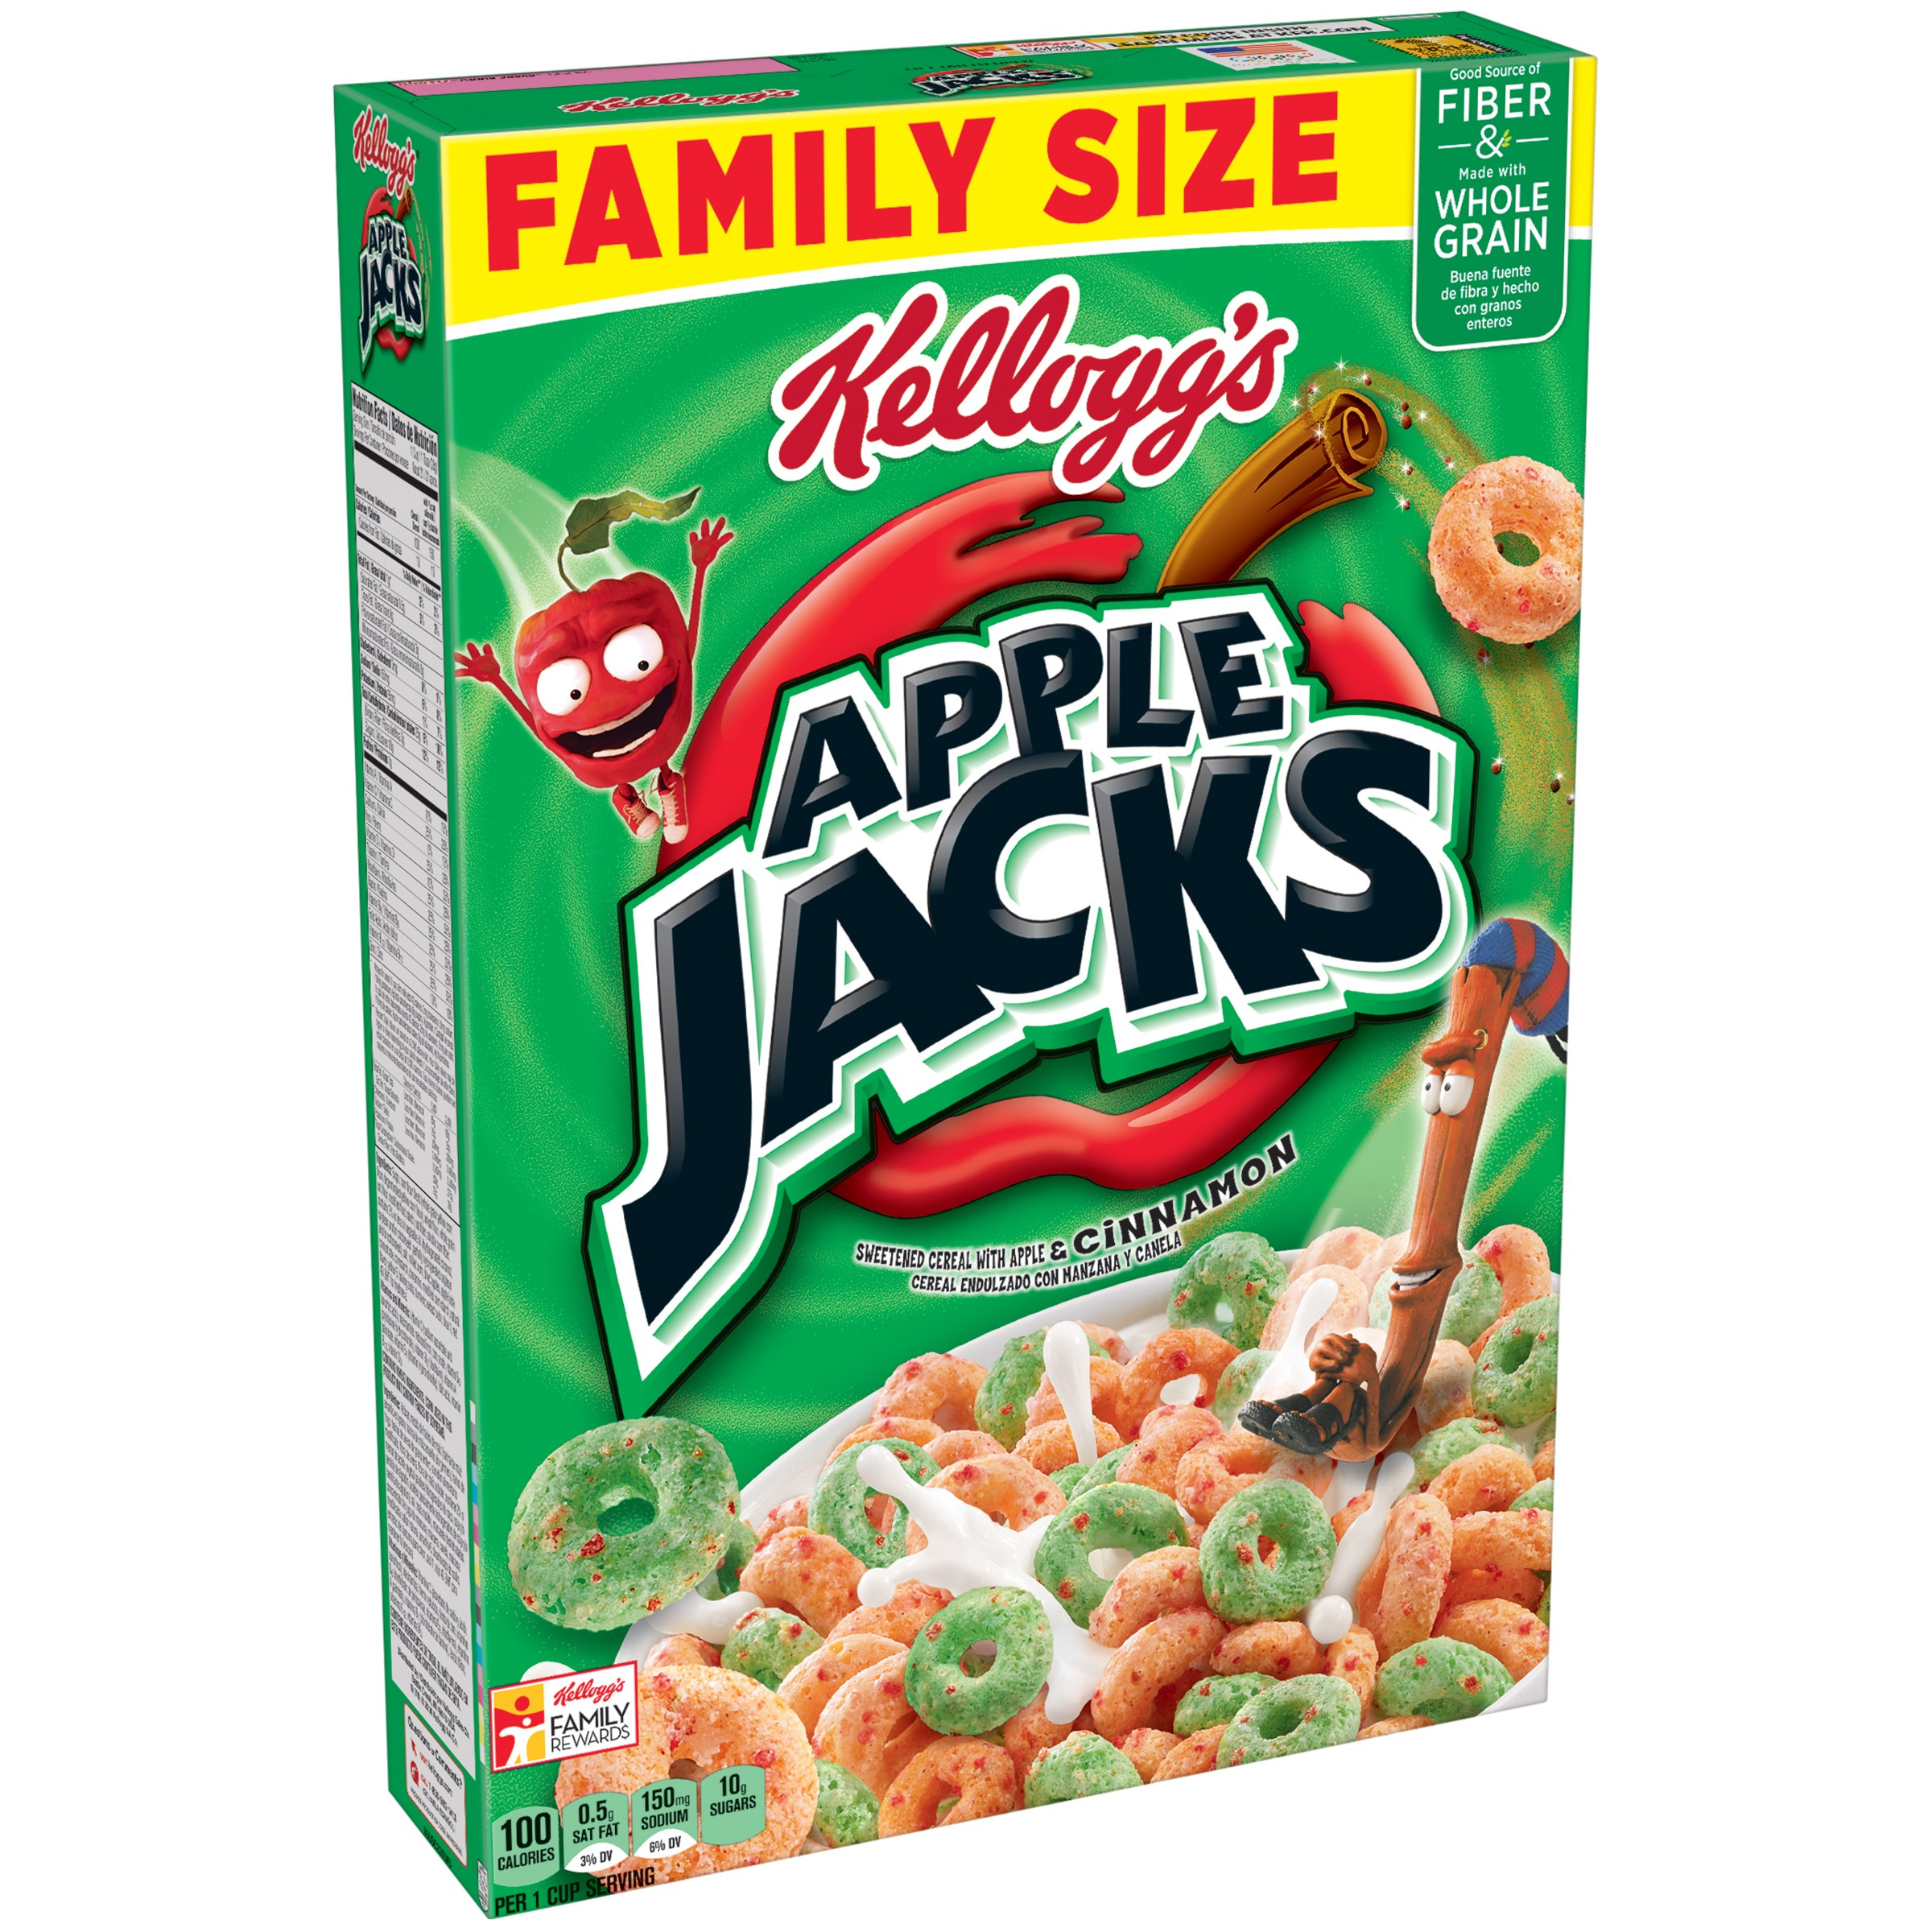 Kellogg's apple jacks cereal, 21.7 oz